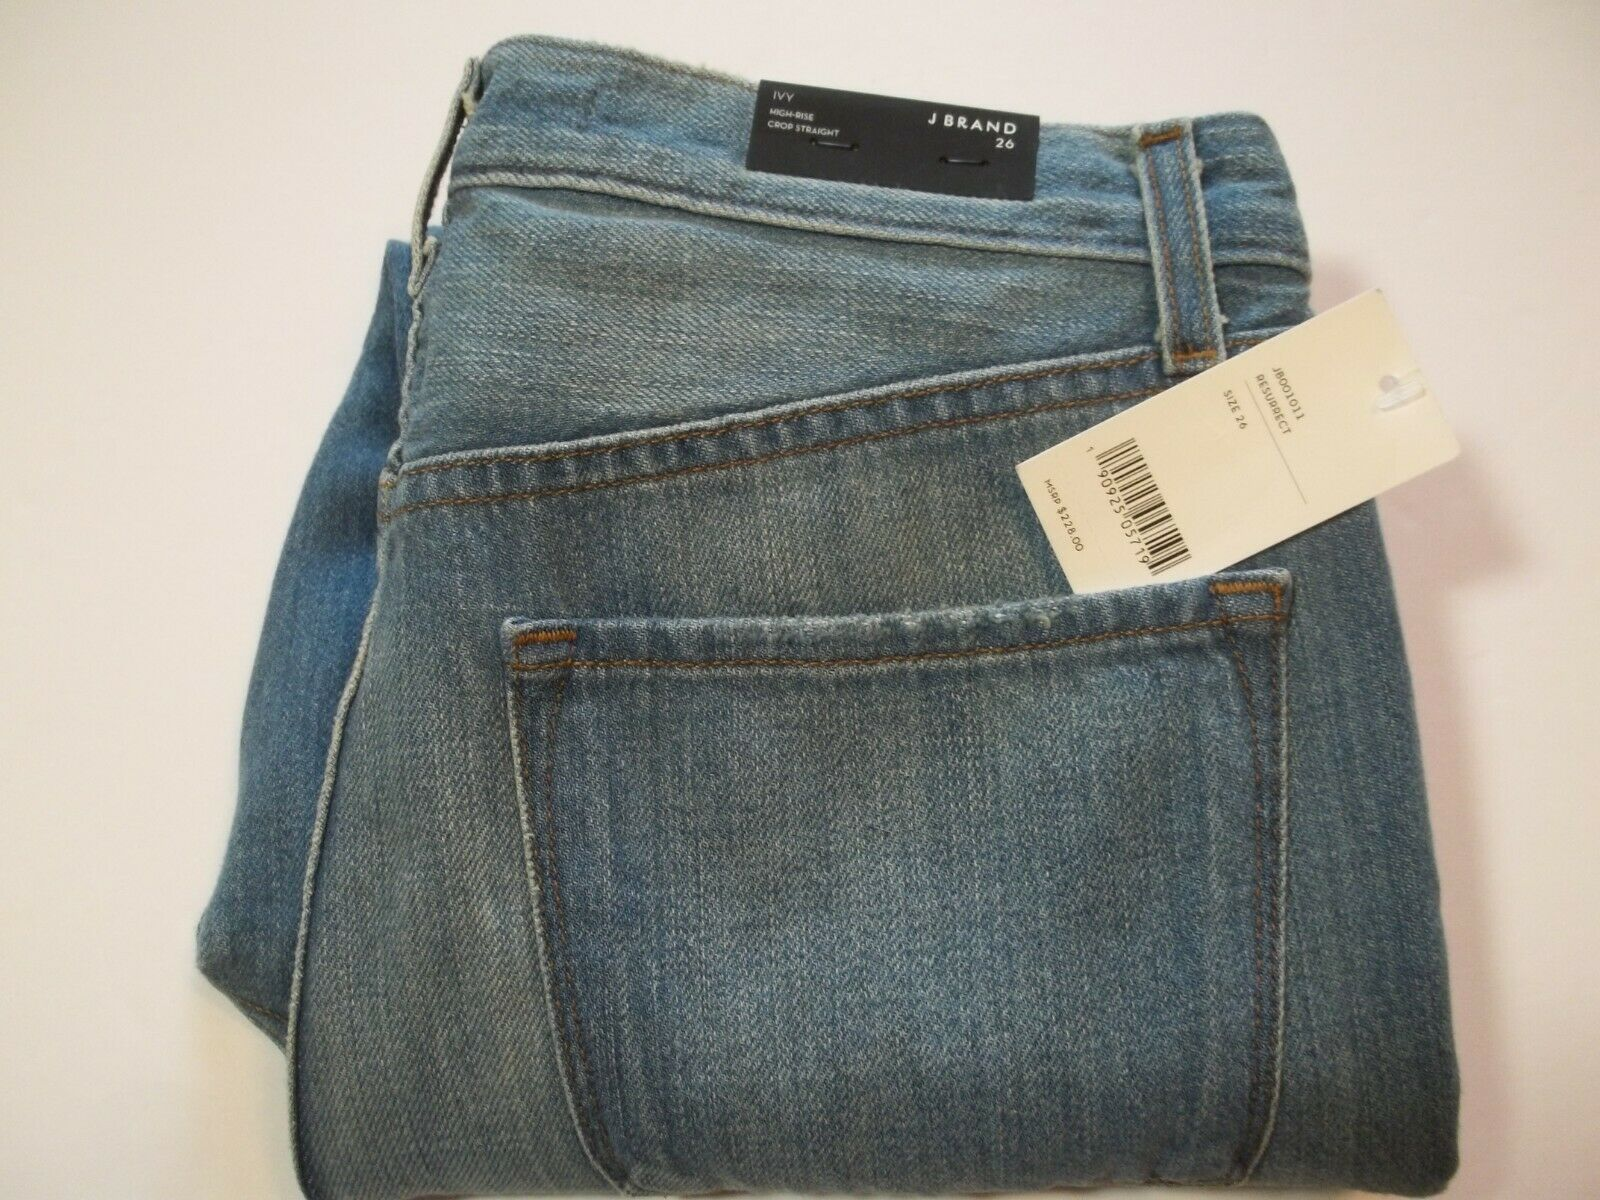 New Women's J BRAND Ivy Resurrect High Rise Crop Straight Jeans Size 26